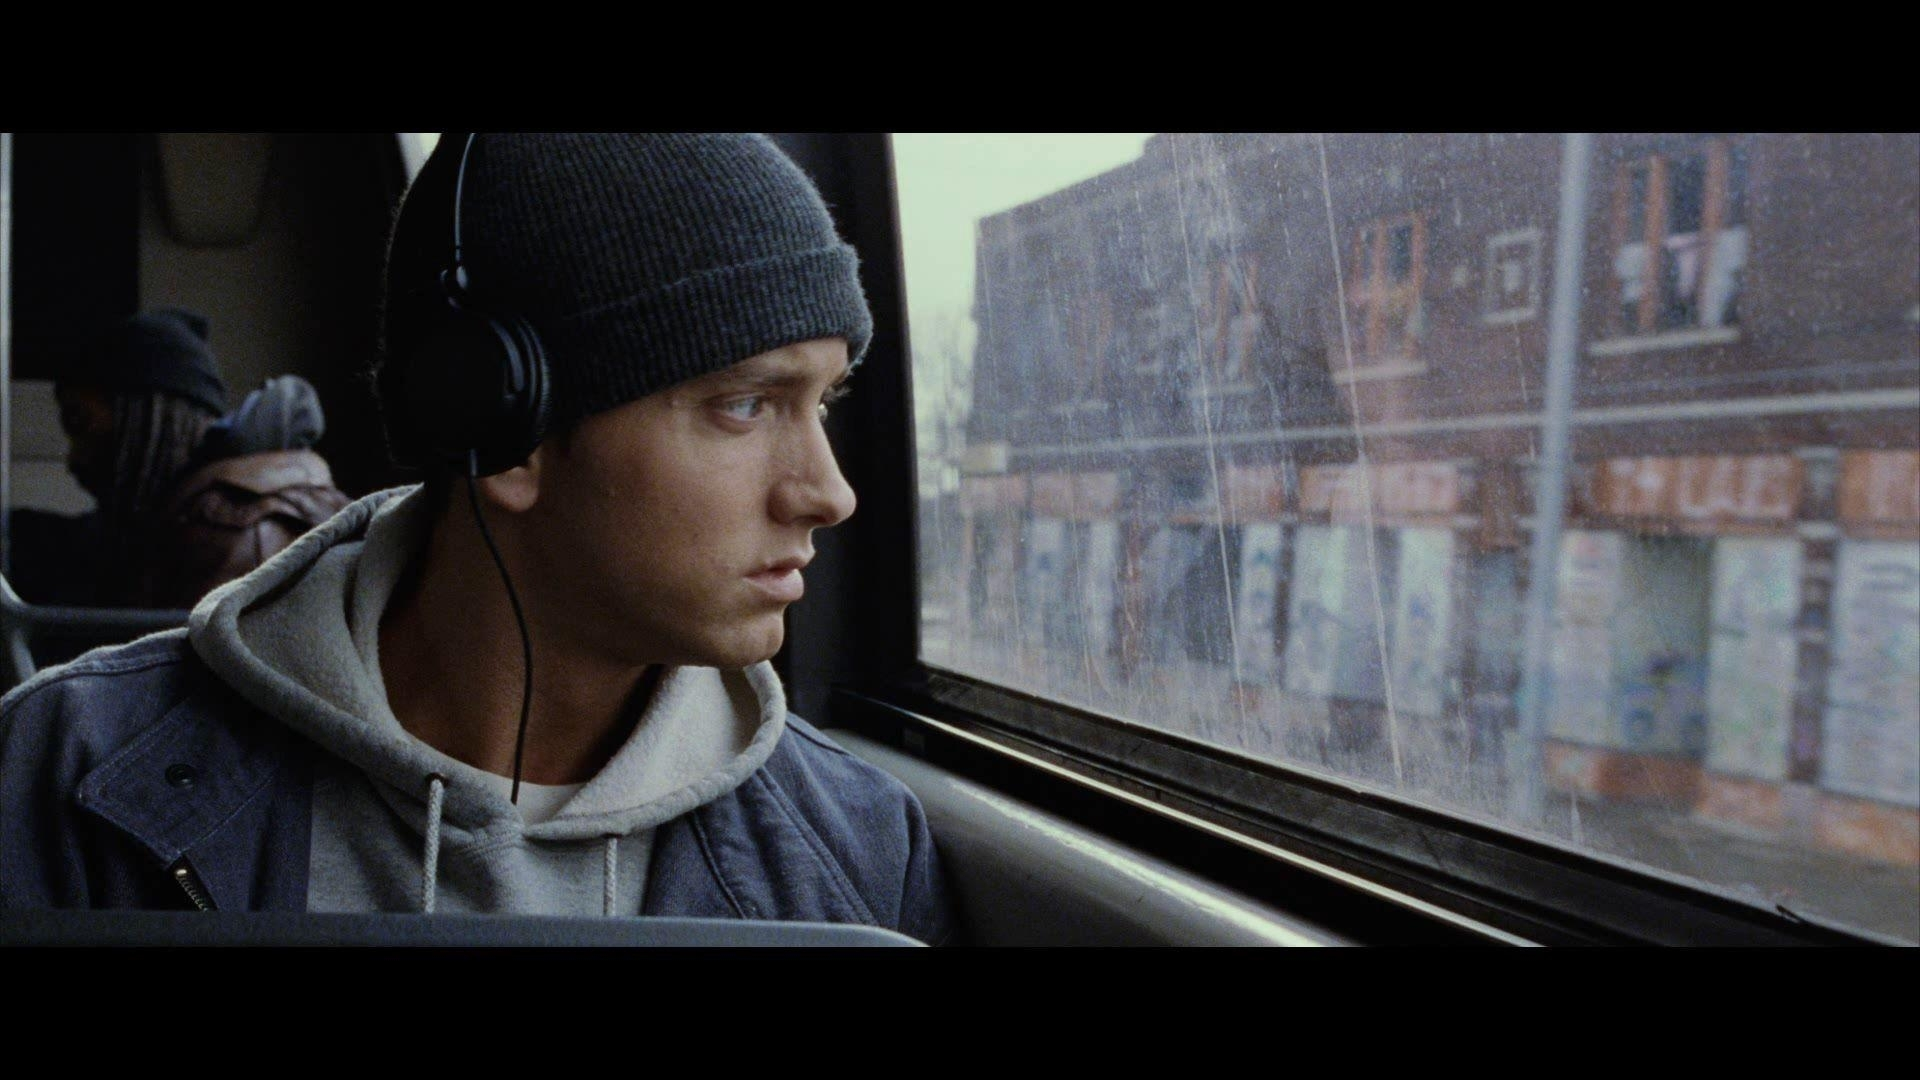 eminem wallpapers 8 mile - wallpaper cave